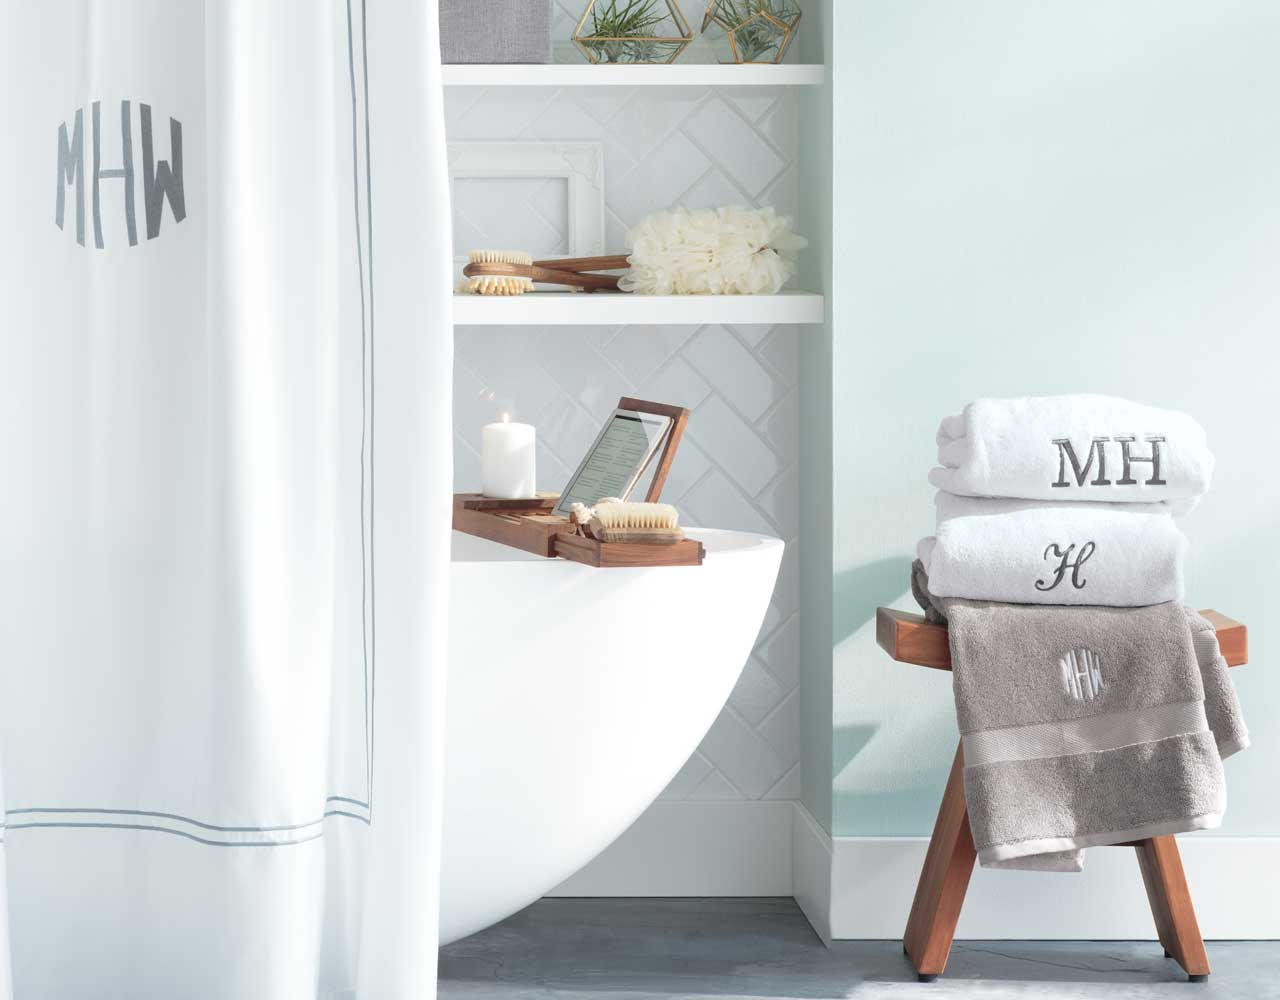 WEEKEND BATHROOM MAKEOVER - Get Inspired